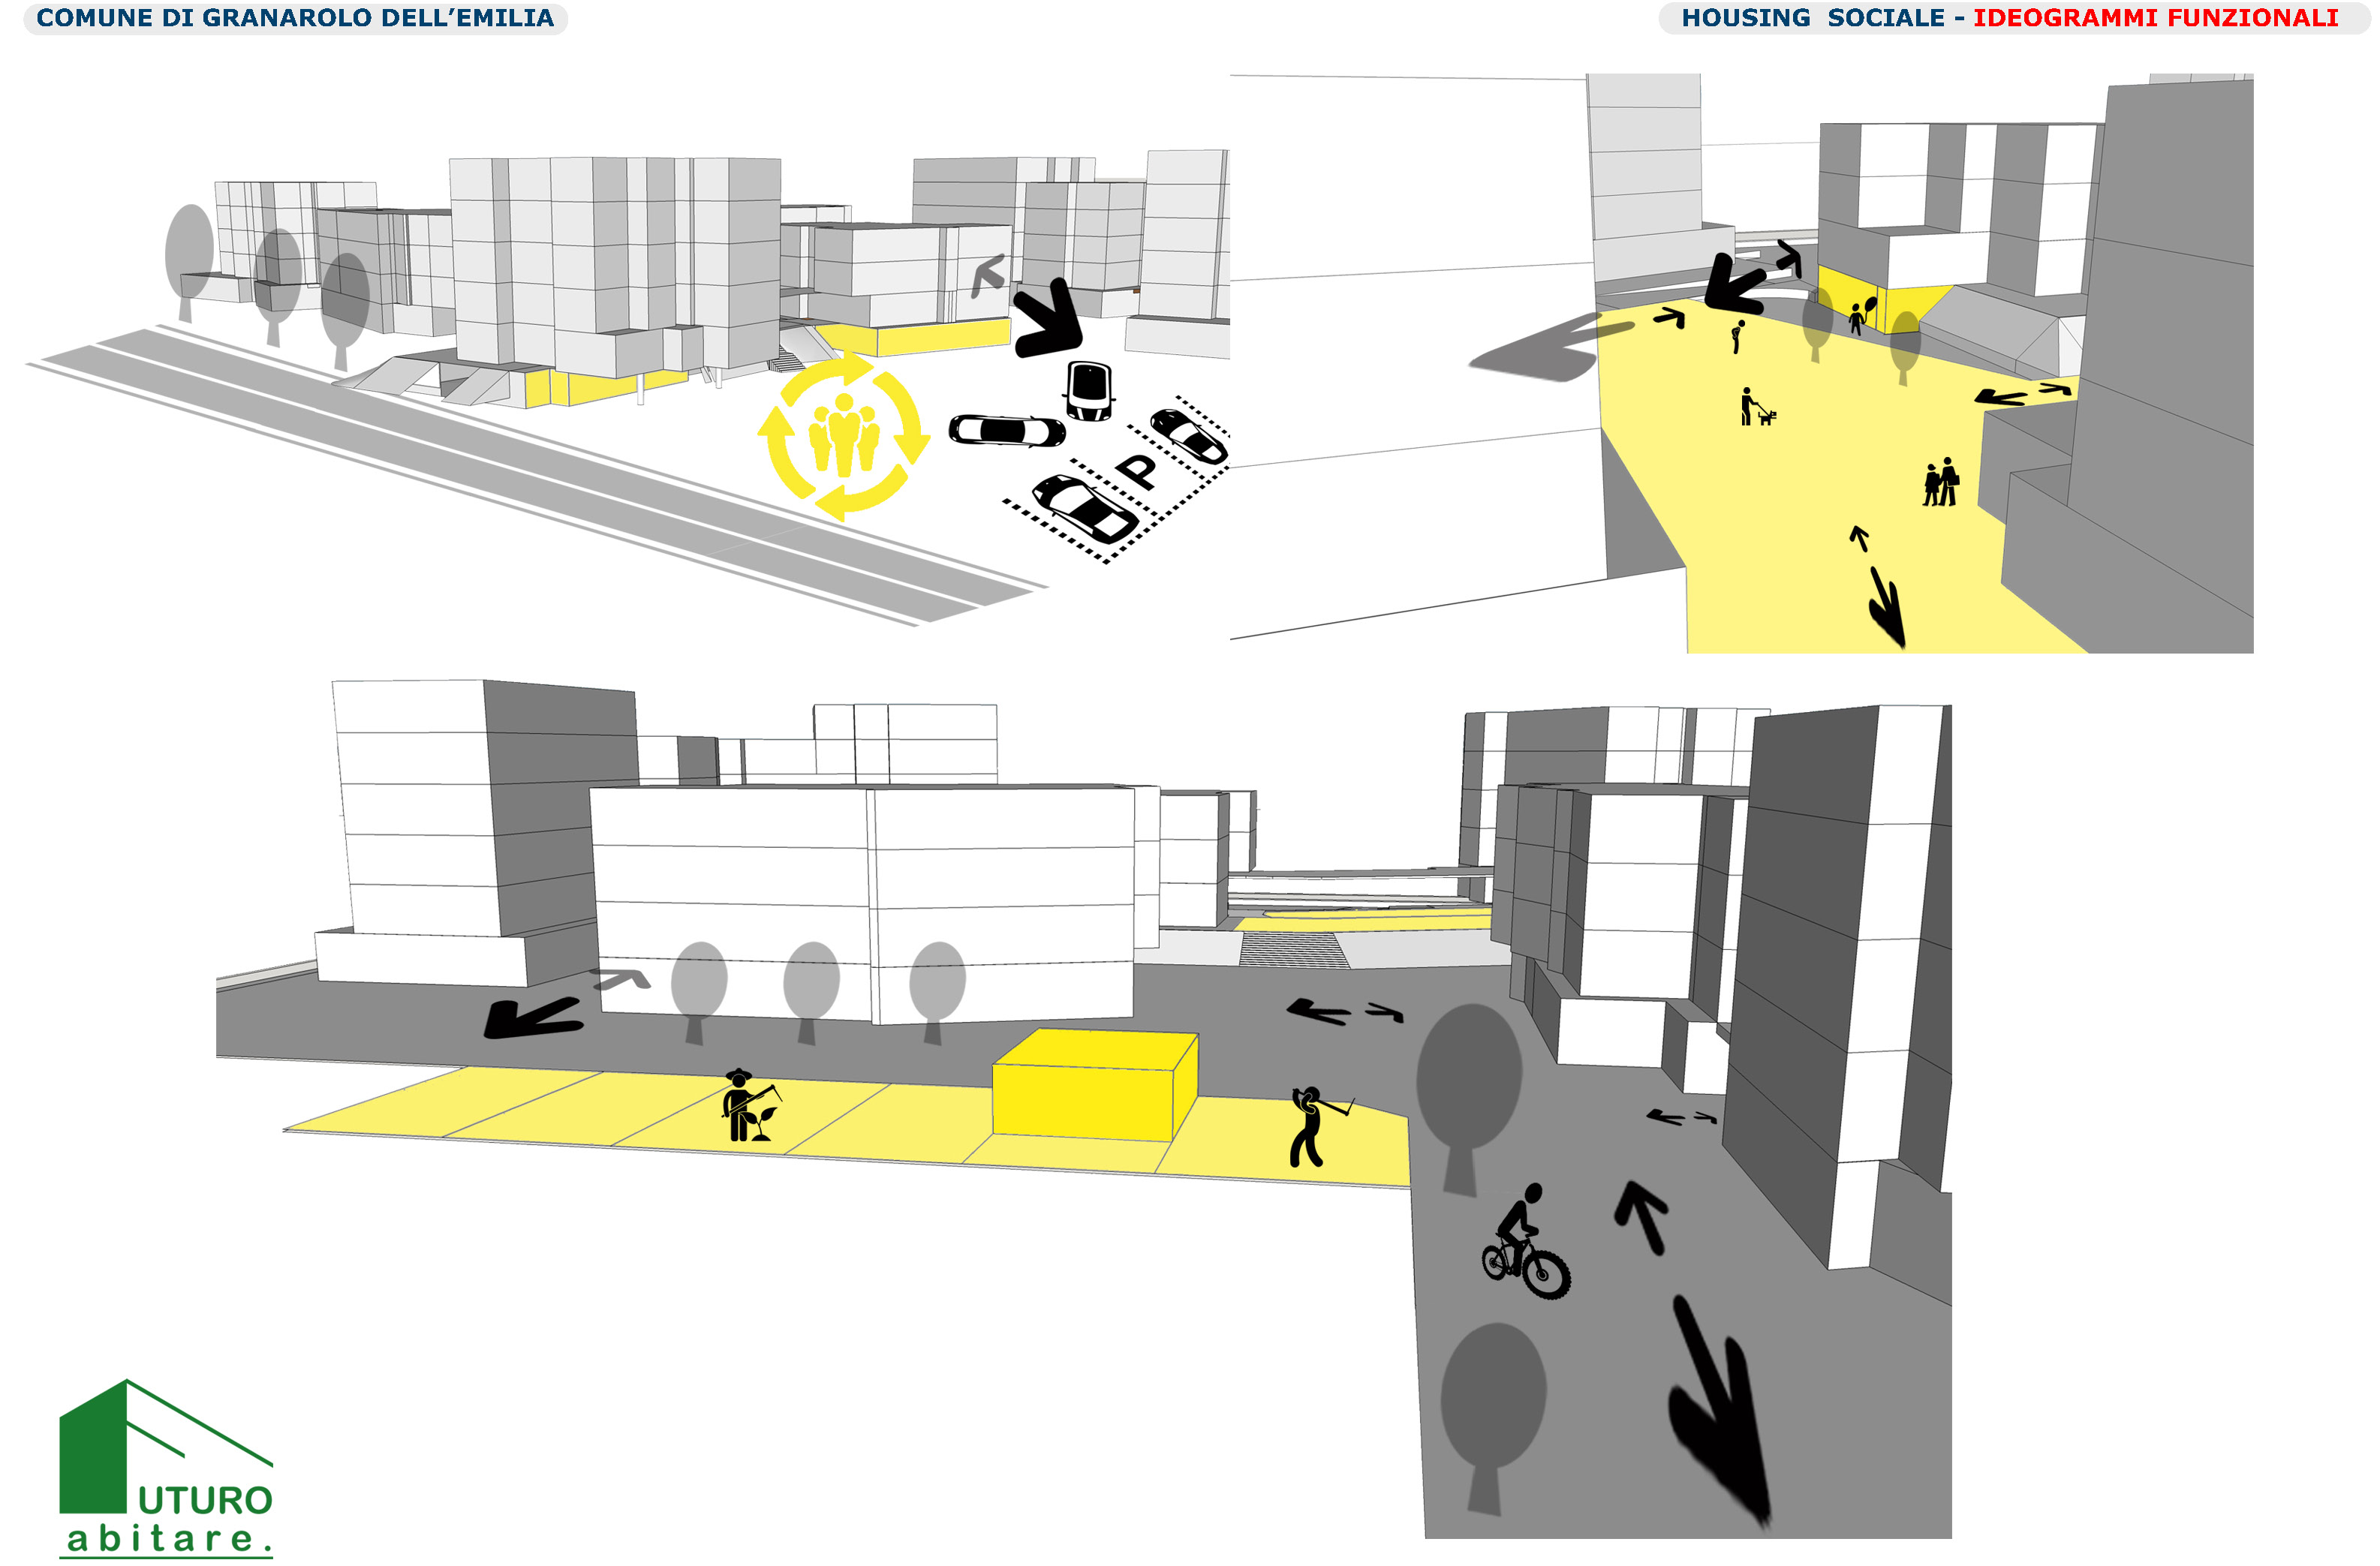 Schema_Ideogrammi funzionali_Studio preliminare photo © 2019 by GBA Studio srl / Gianluca Brini - Architetto Bologna - Via Andrea Costa 202/2 http://www.gbastudio.it/}